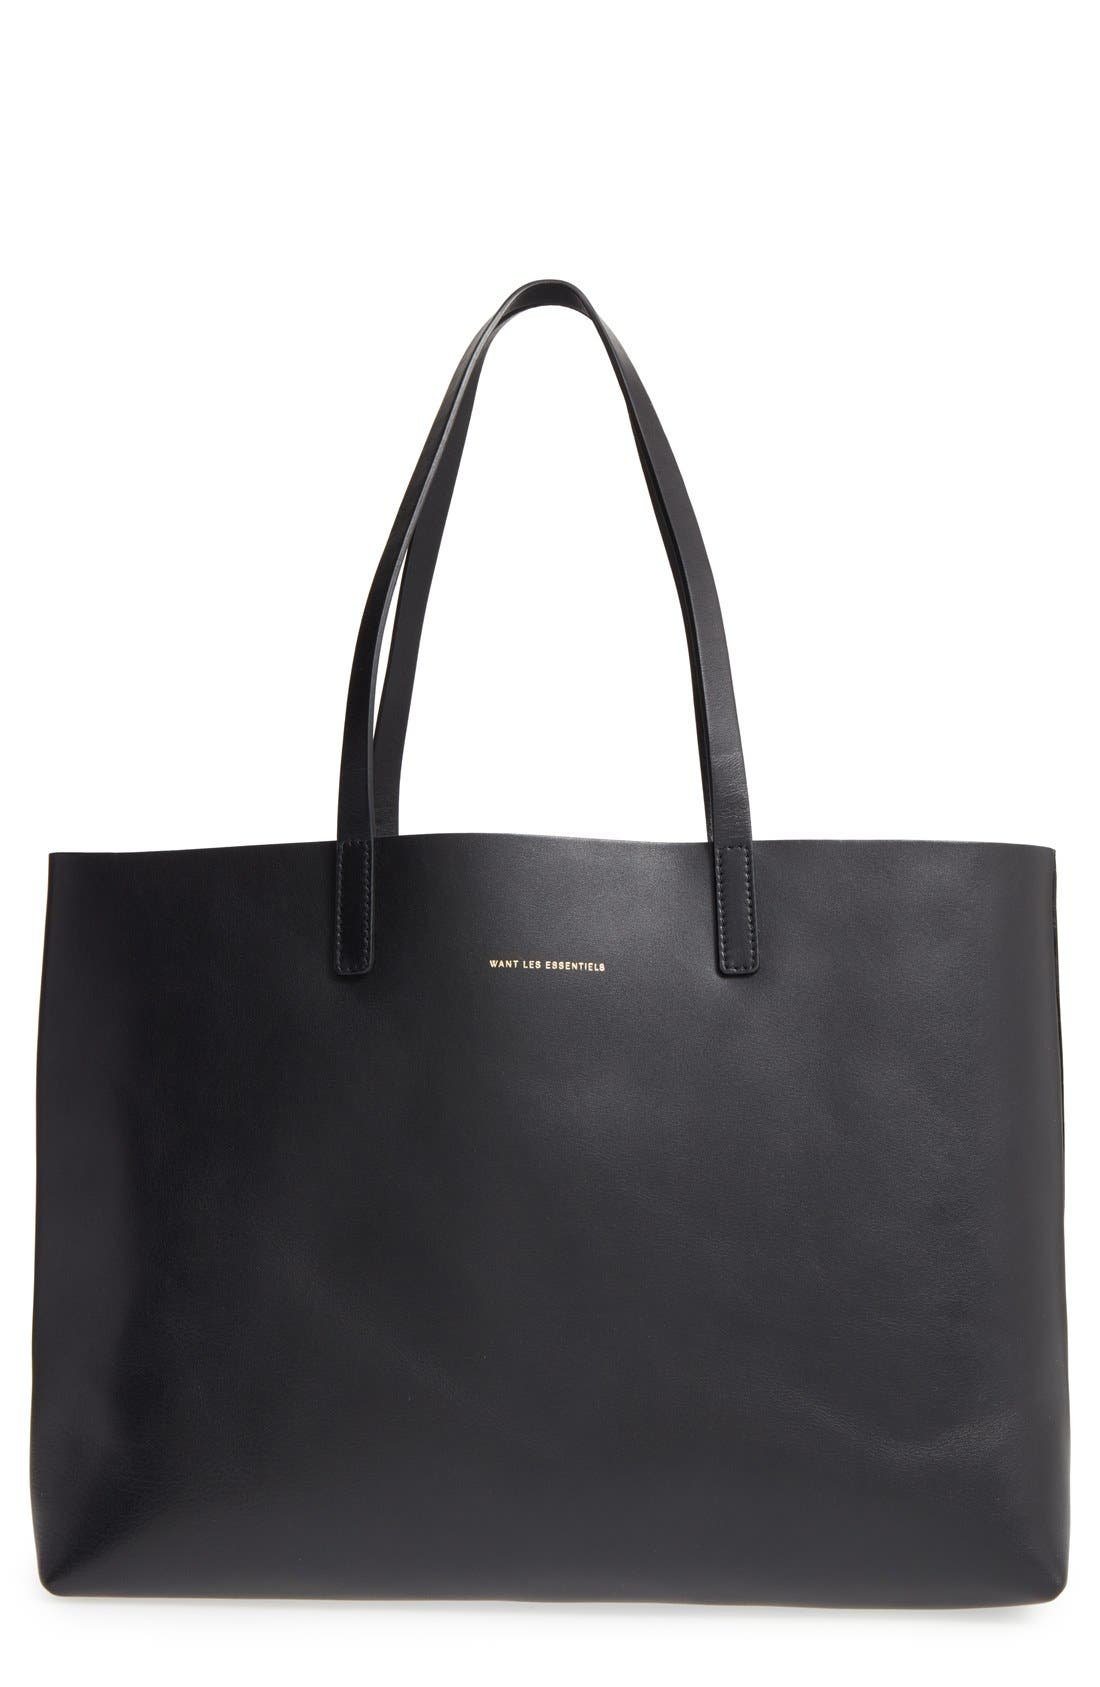 Alternate Image 1 Selected - WANT LES ESSENTIELS 'Strauss' Reversible Leather Tote